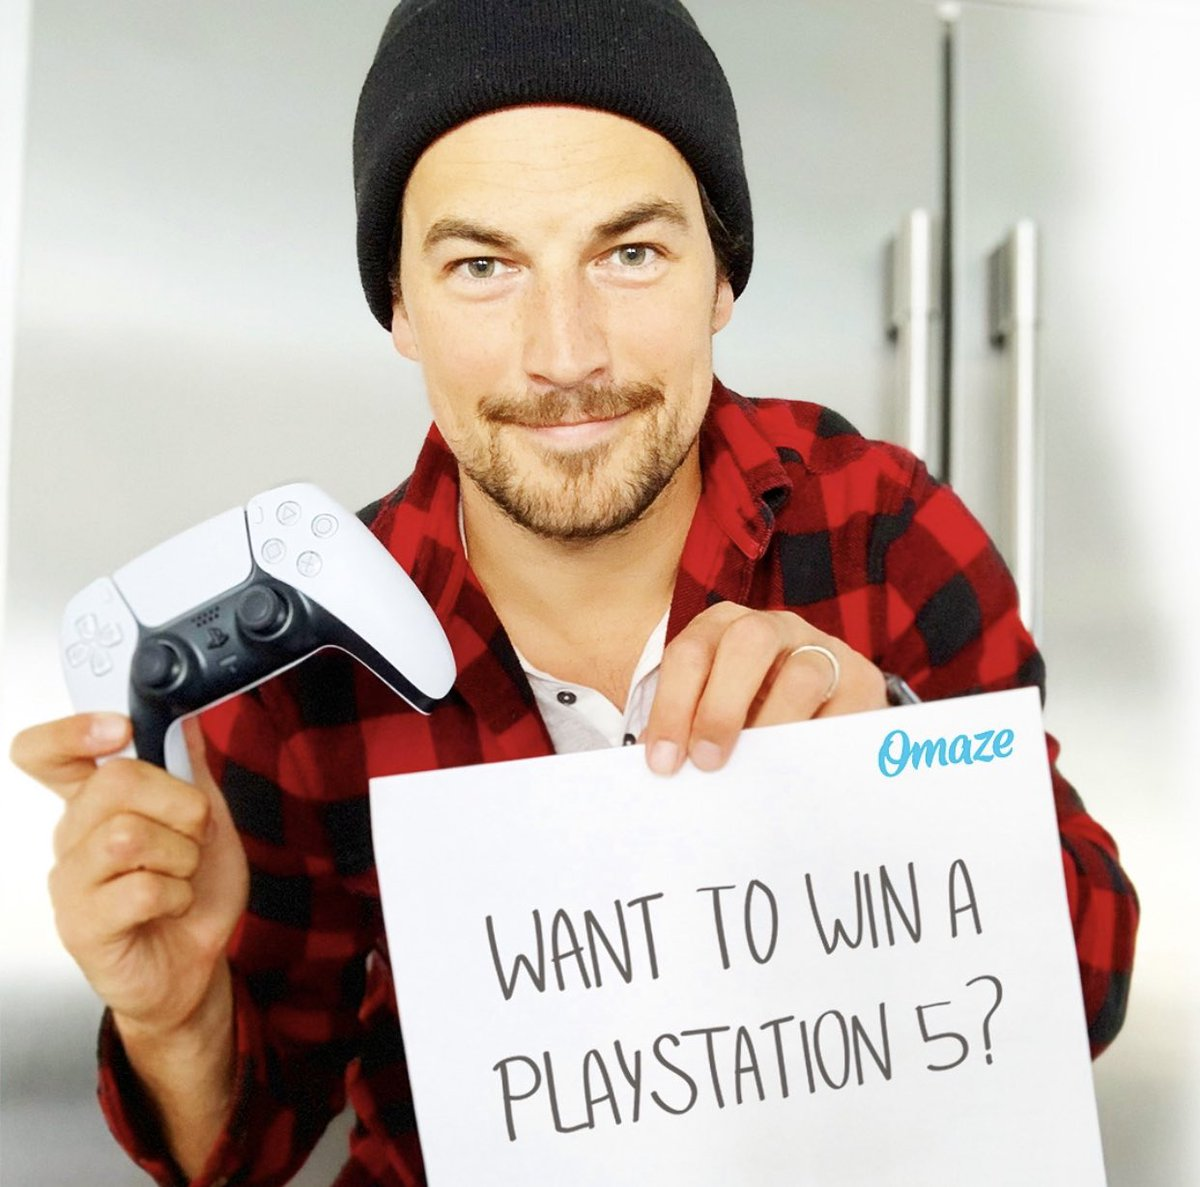 I teamed up with @omaze to give away TWO brand new standard PlayStation 5 consoles, and YOU could win one! Every donation supports the awesome work of My Friend's Place, so enter at the link in my bio or go to  today! #omaze @MFPLA #ps5 #ps5giveaway